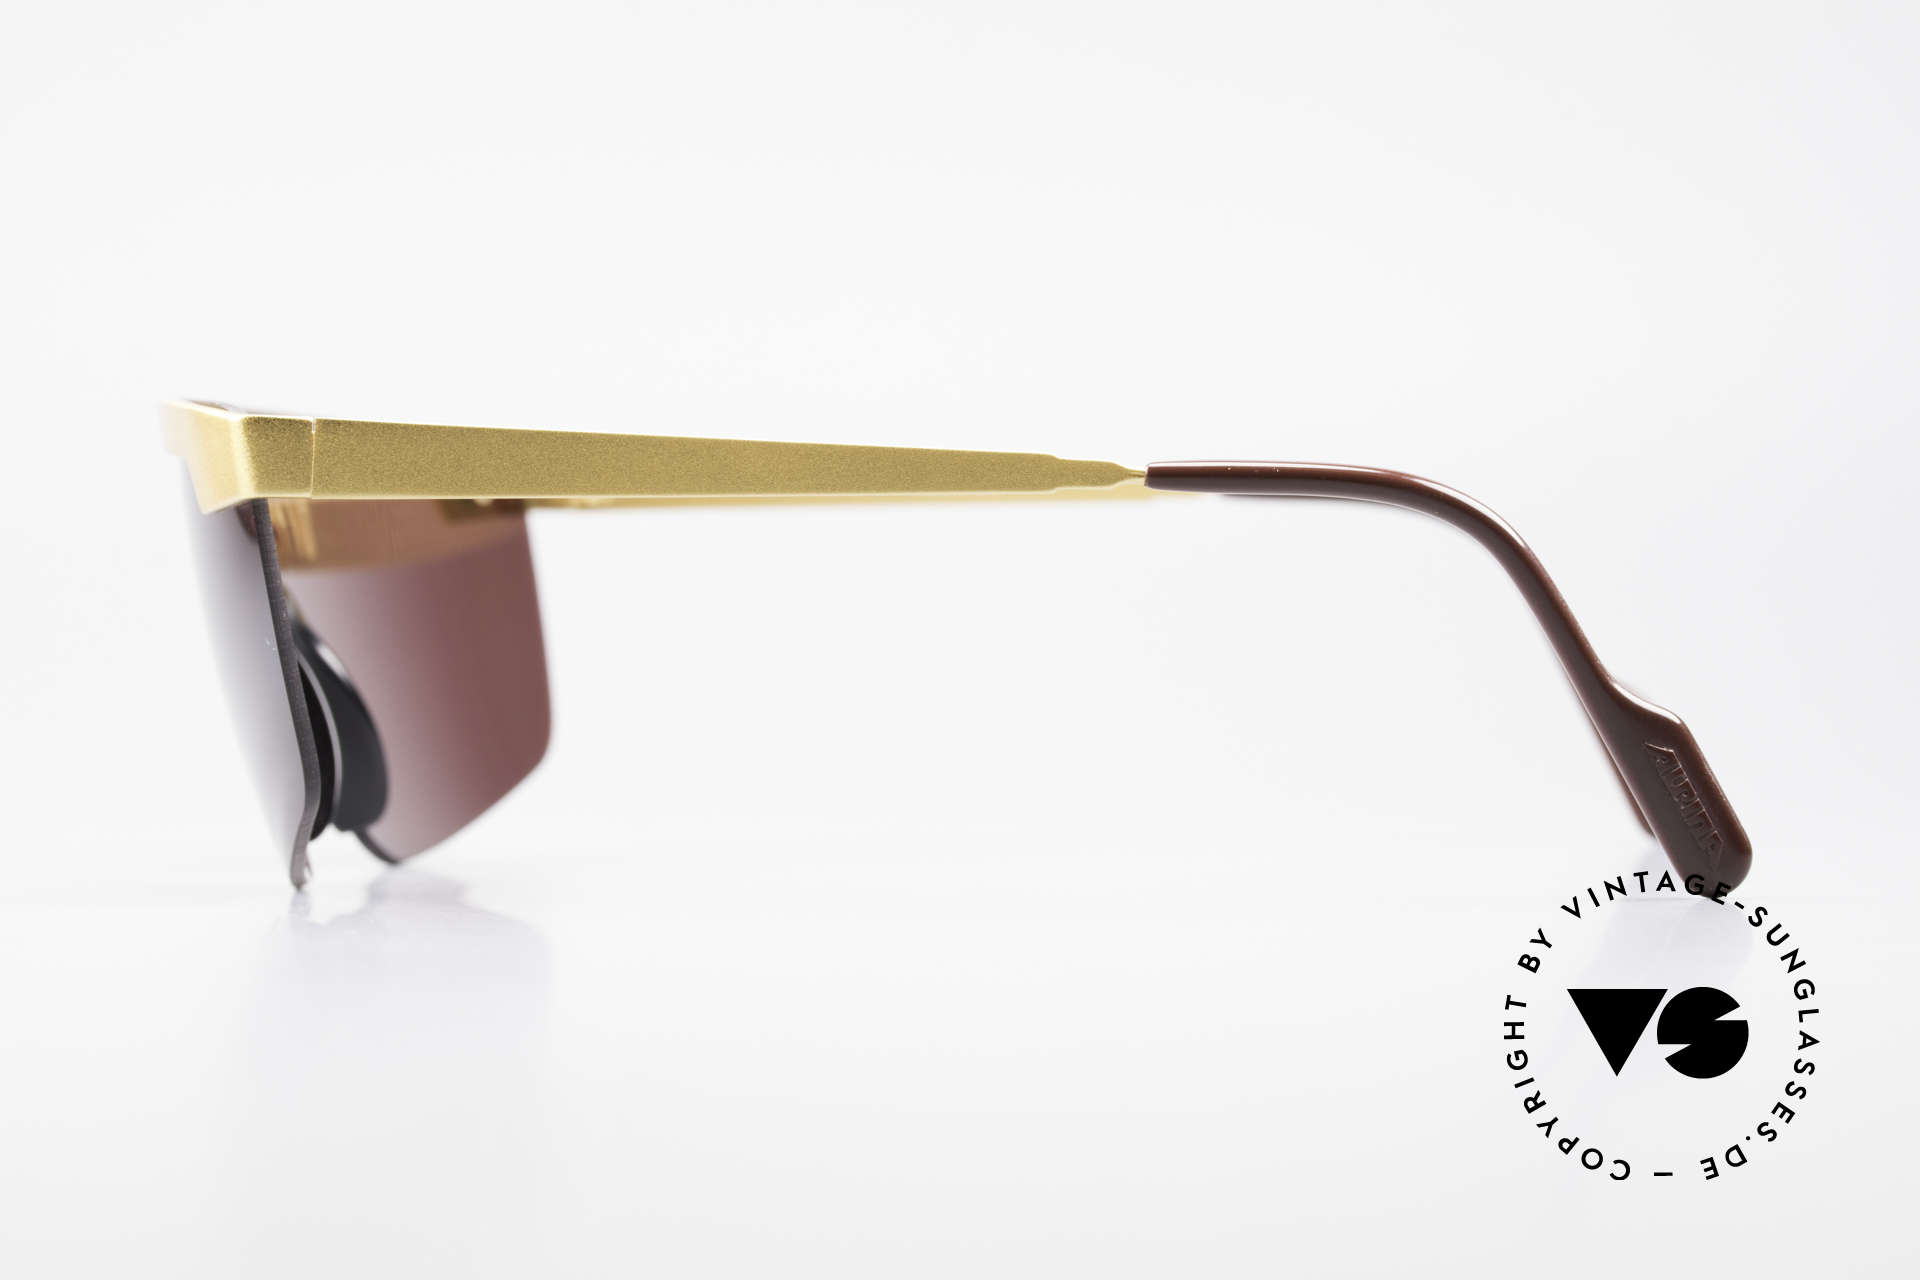 Alpina M57 Vintage Shades Panorama View, unworn (like all our vintage Alpina sunglasses), Made for Men and Women